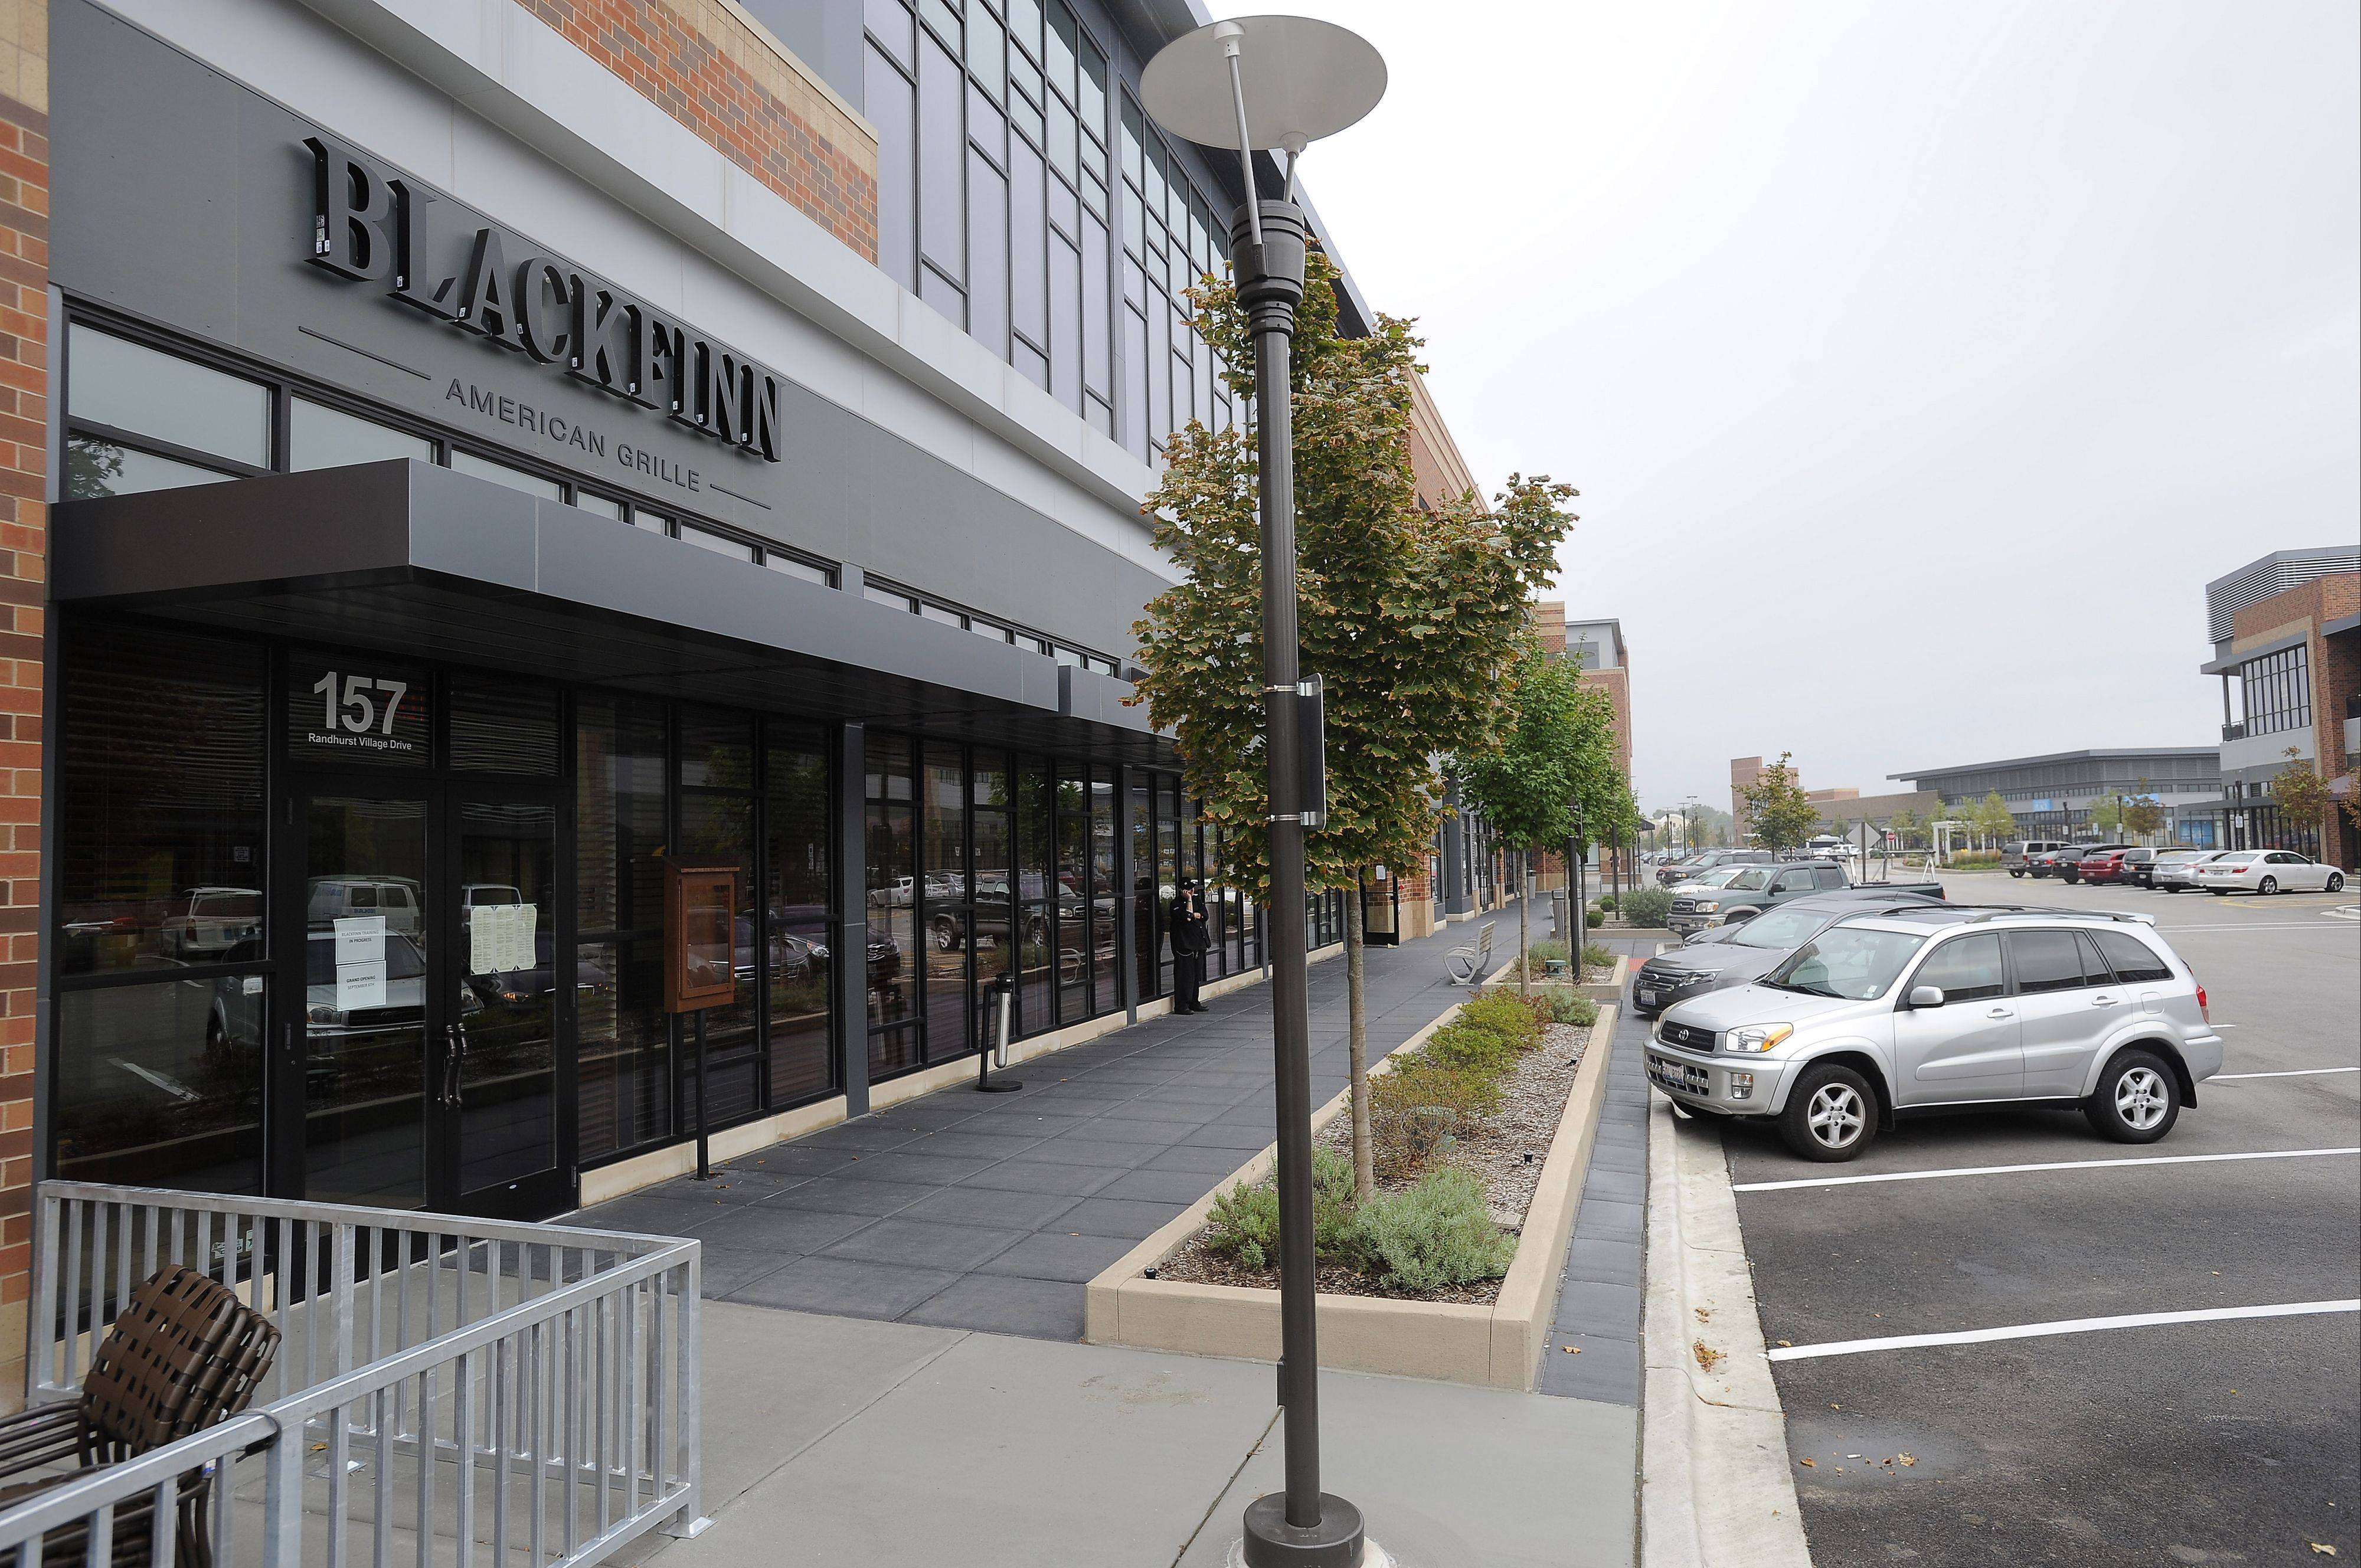 BlackFinn American Grille is one of the restaurants that has opened at Randhurst Village in Mount Prospect.